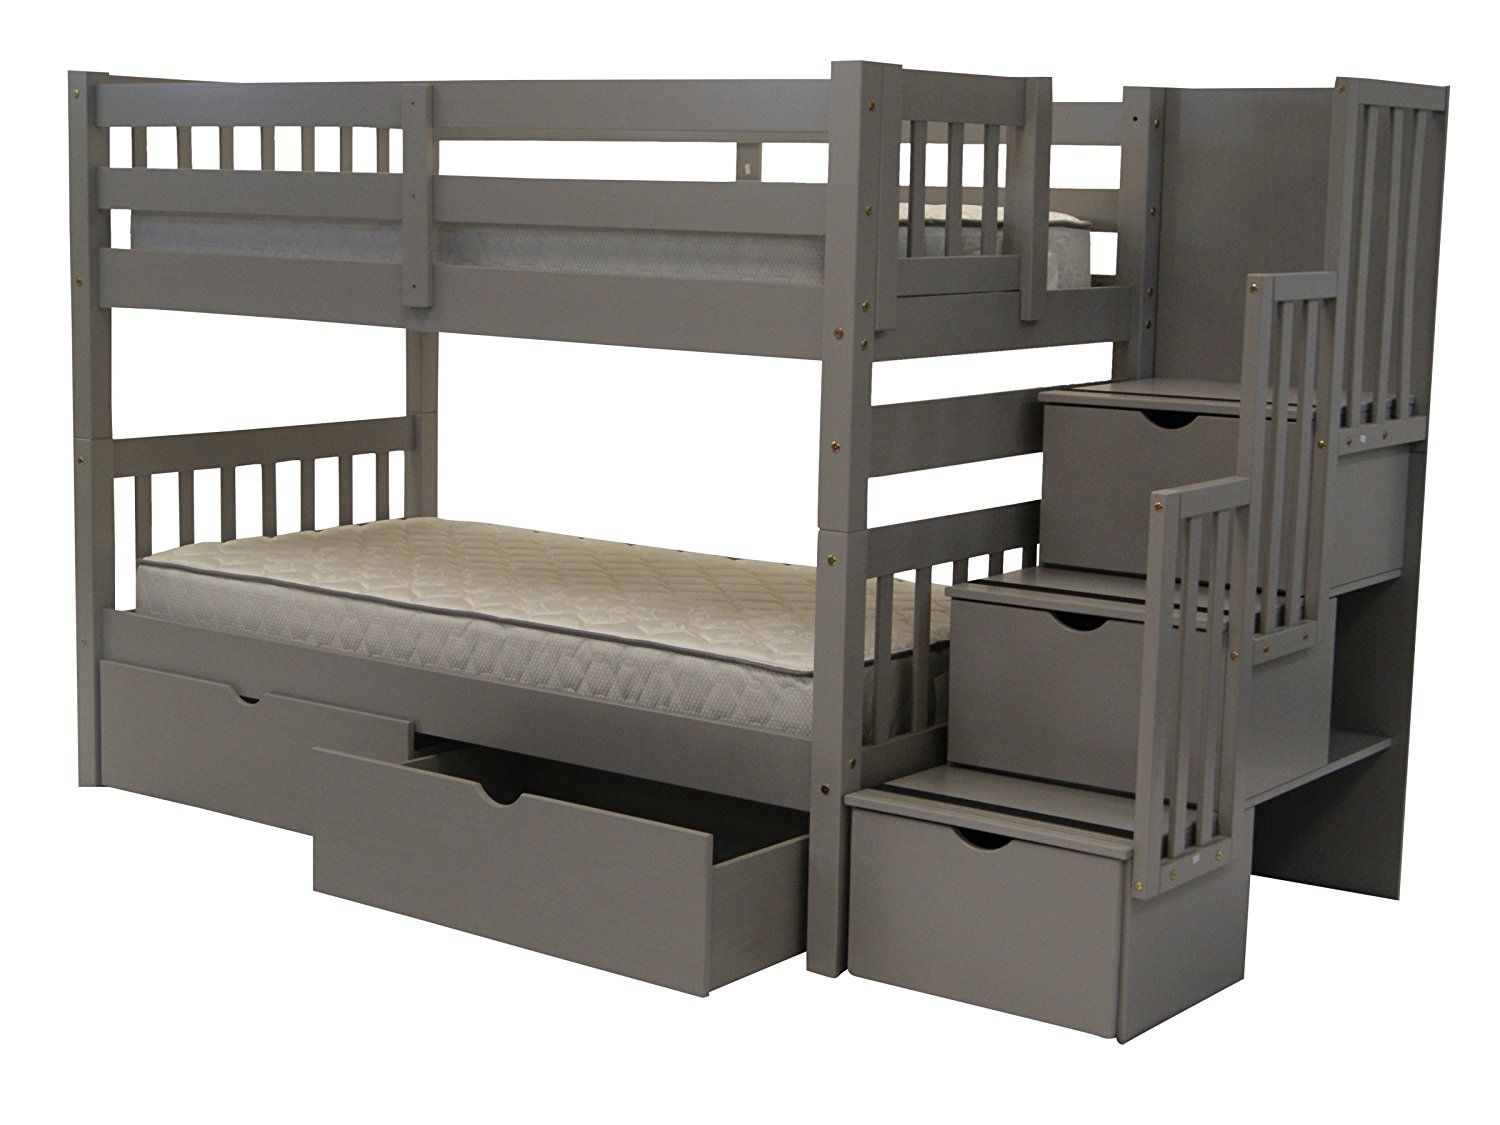 bedz king stairway bunk bed twin over twin with 3 drawers in the steps and 2